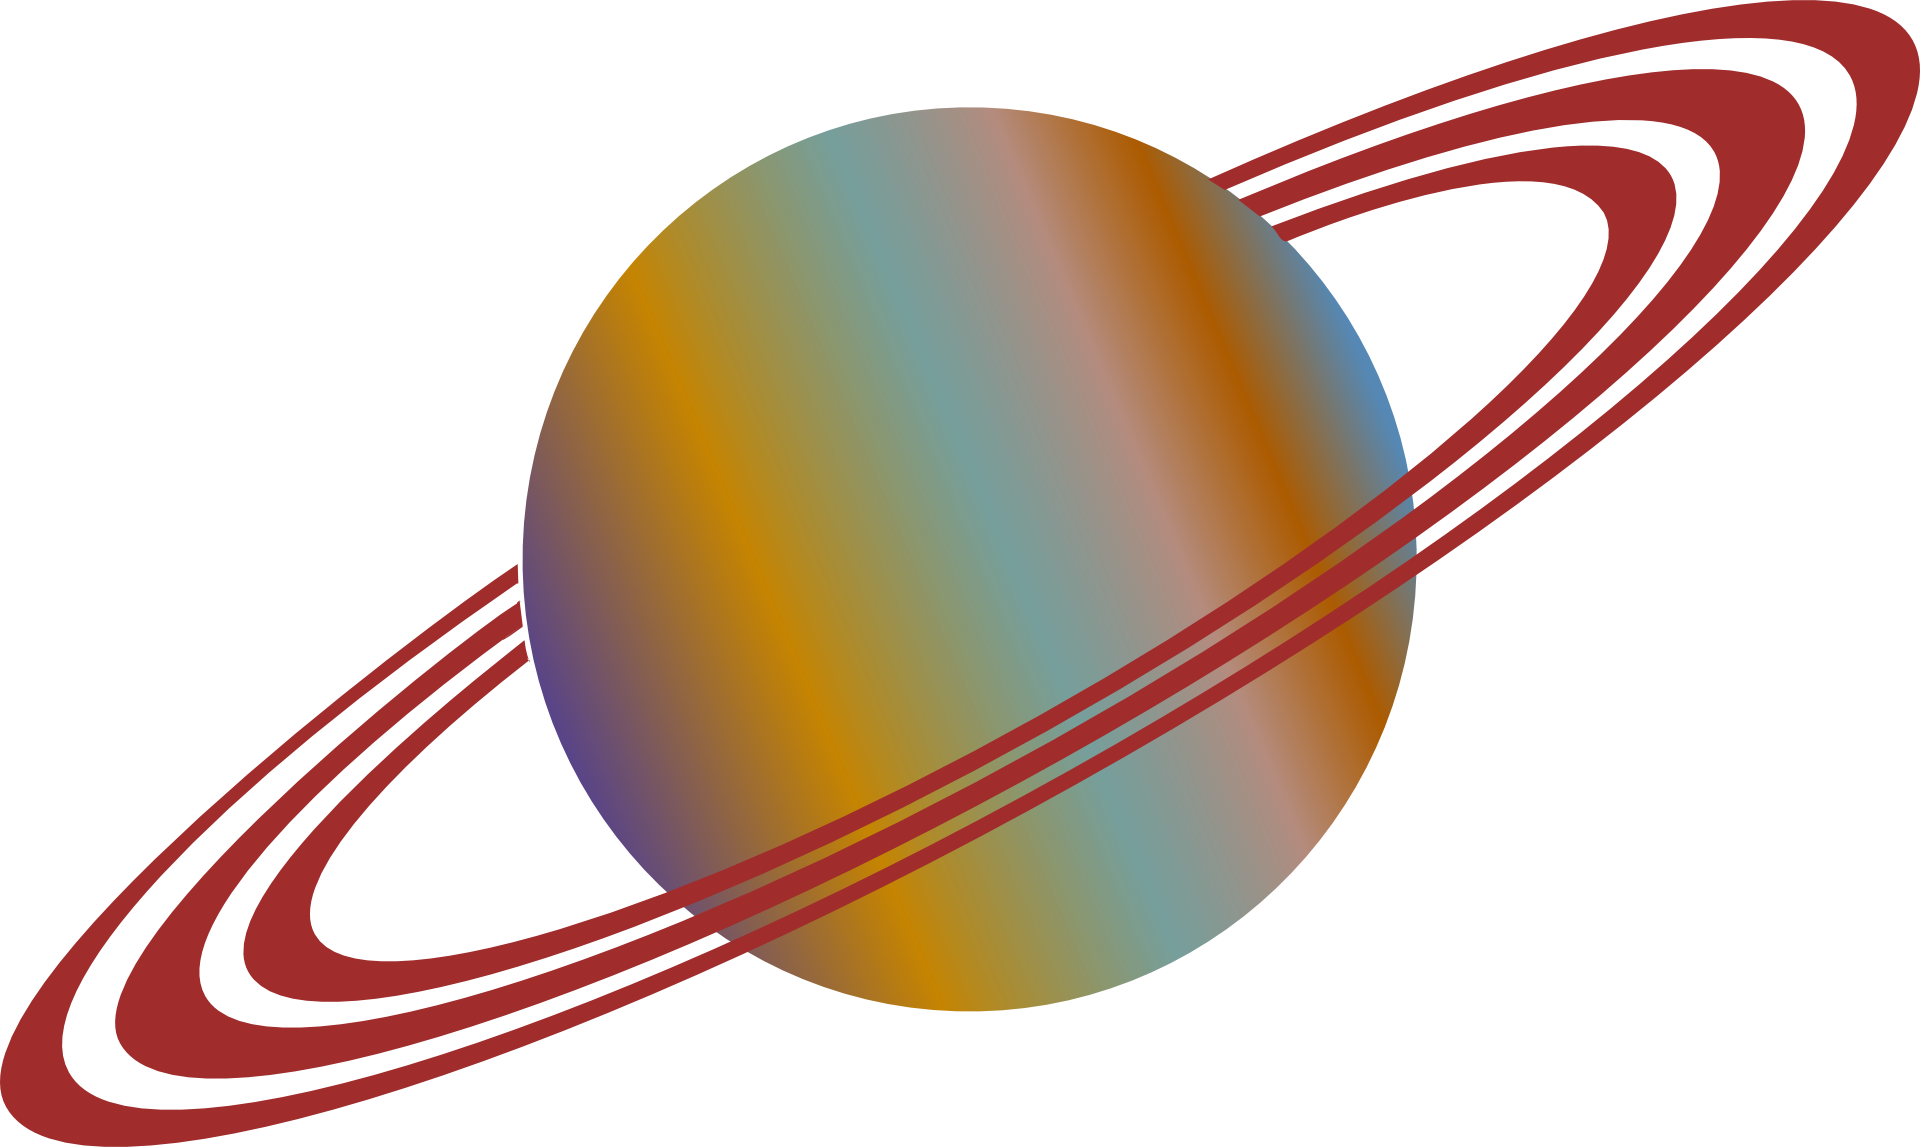 Ring system rings of. Planet clipart colorful